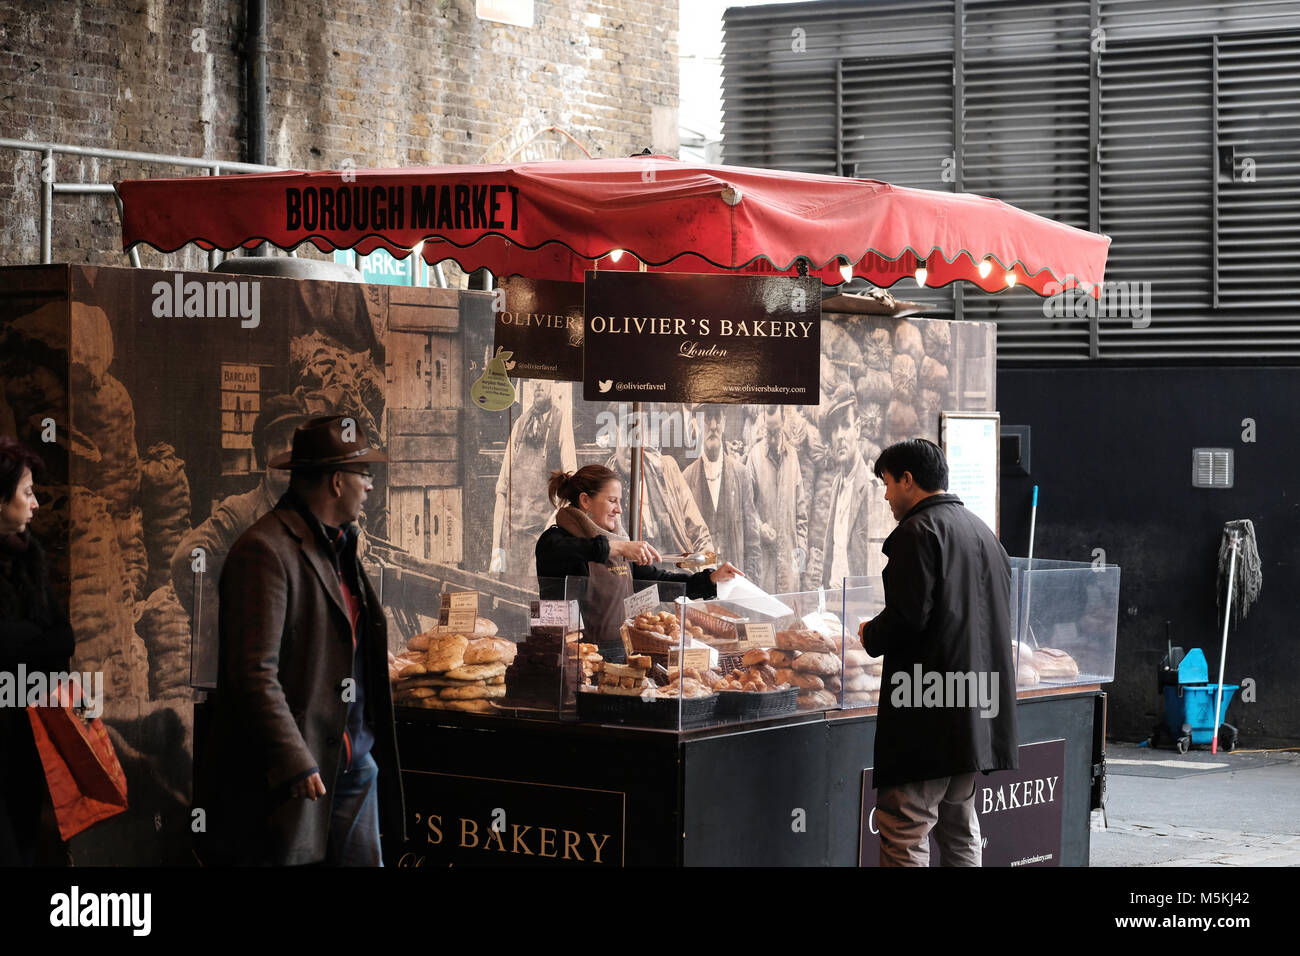 Borough Market, London, United Kingdom - Stock Image